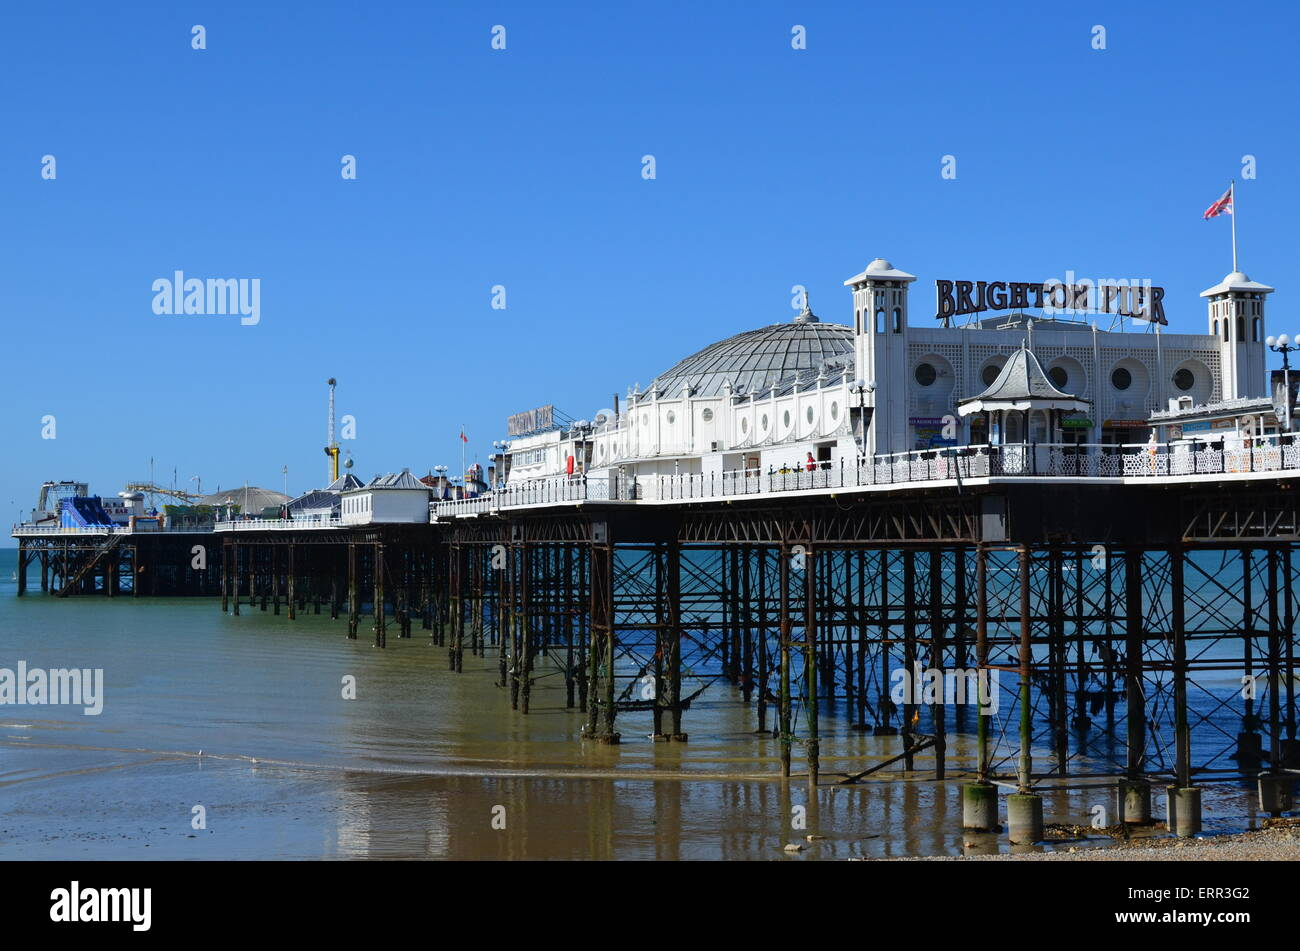 Palace pier was renamed Brighton pier by it's present owner's. The Victorian pleasure pier is one of the - Stock Image